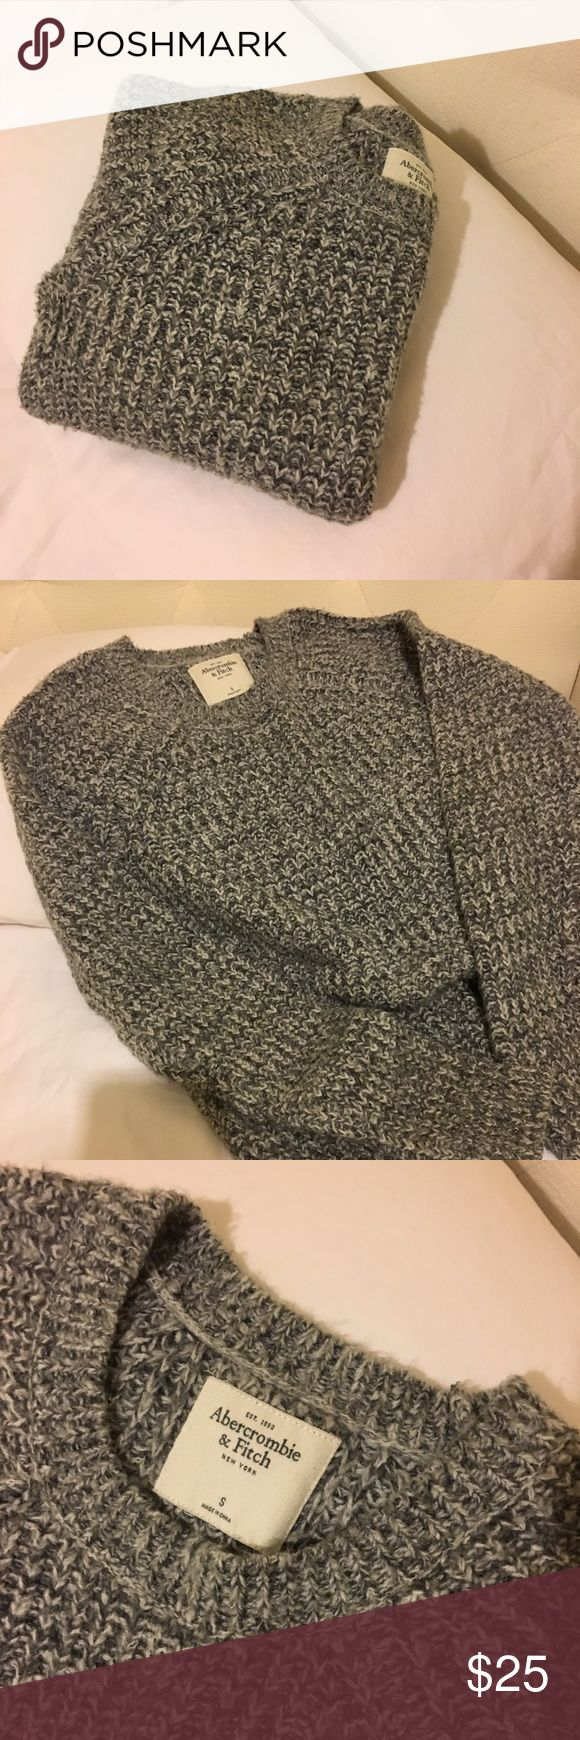 Gray Knit Sweater A&F Abercrombie & Fitch gray knit sweater! Worn a few times only. Super cozy, super comfy! Will make so many cute outfits, for so many different occasions. In good condition! Abercrombie & Fitch Sweaters Crew & Scoop Necks